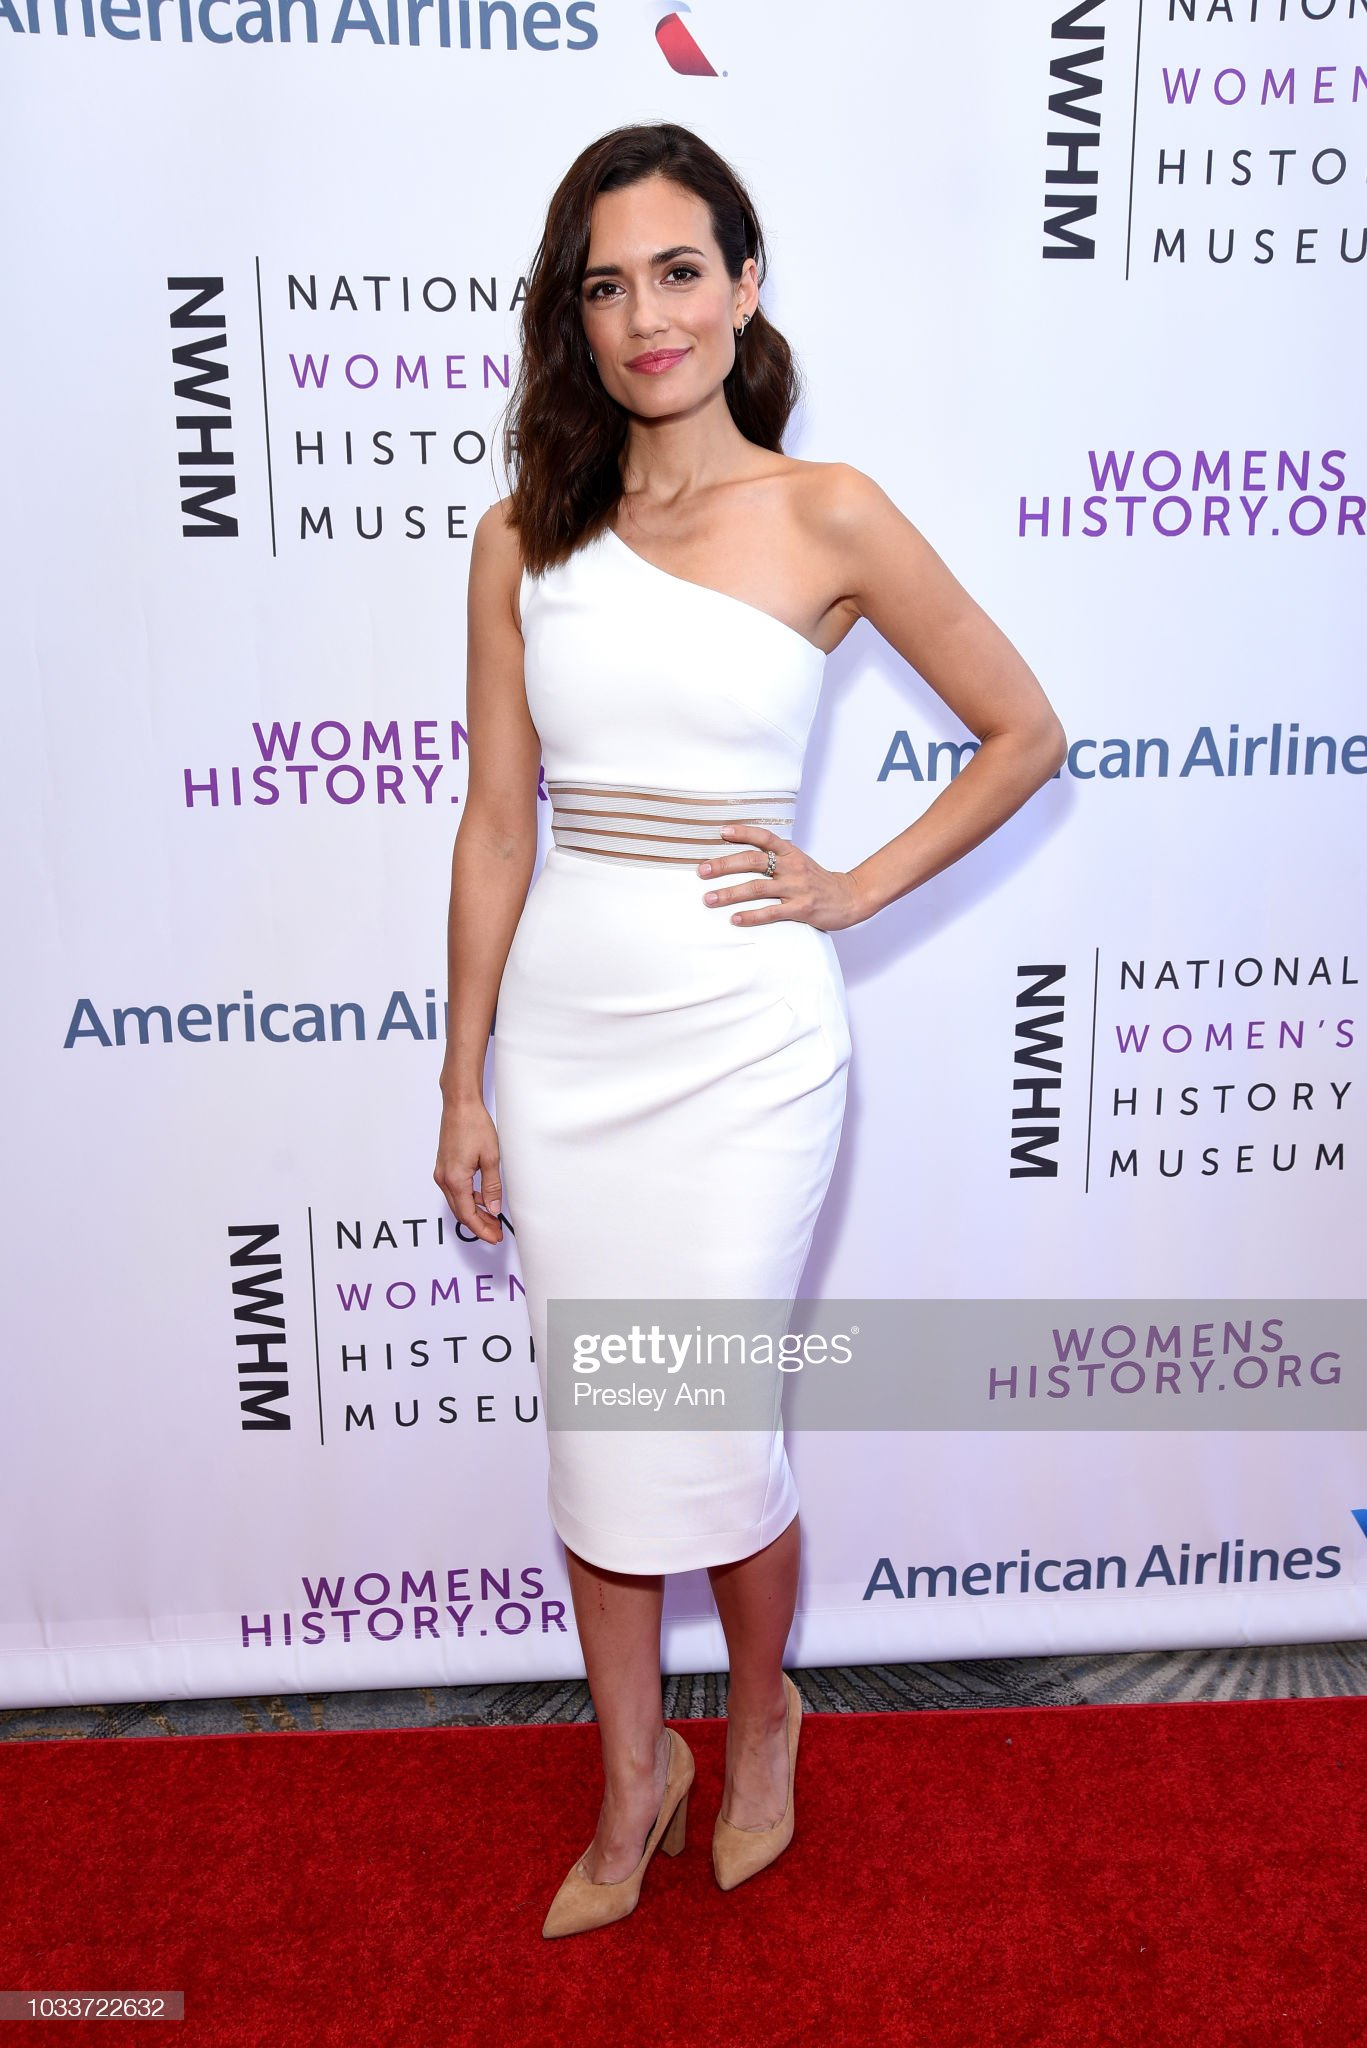 ¿Cuánto mide Torrey DeVitto? - Real height Torrey-devitto-attends-national-womens-history-museums-7th-annual-picture-id1033722632?s=2048x2048